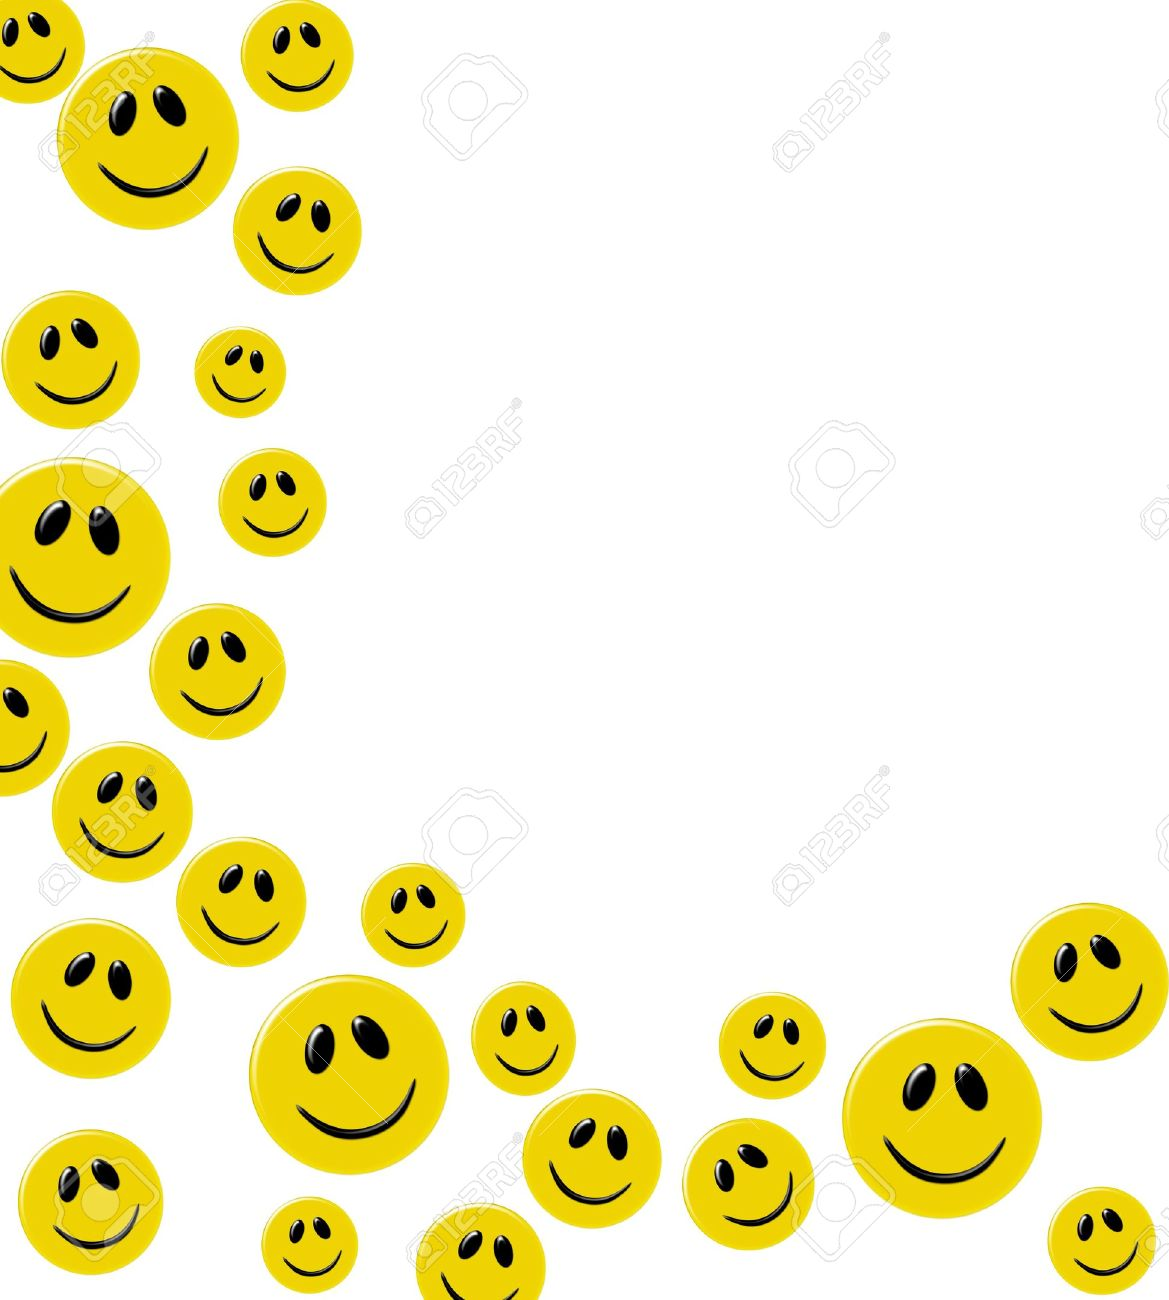 Smiley Faces Background.